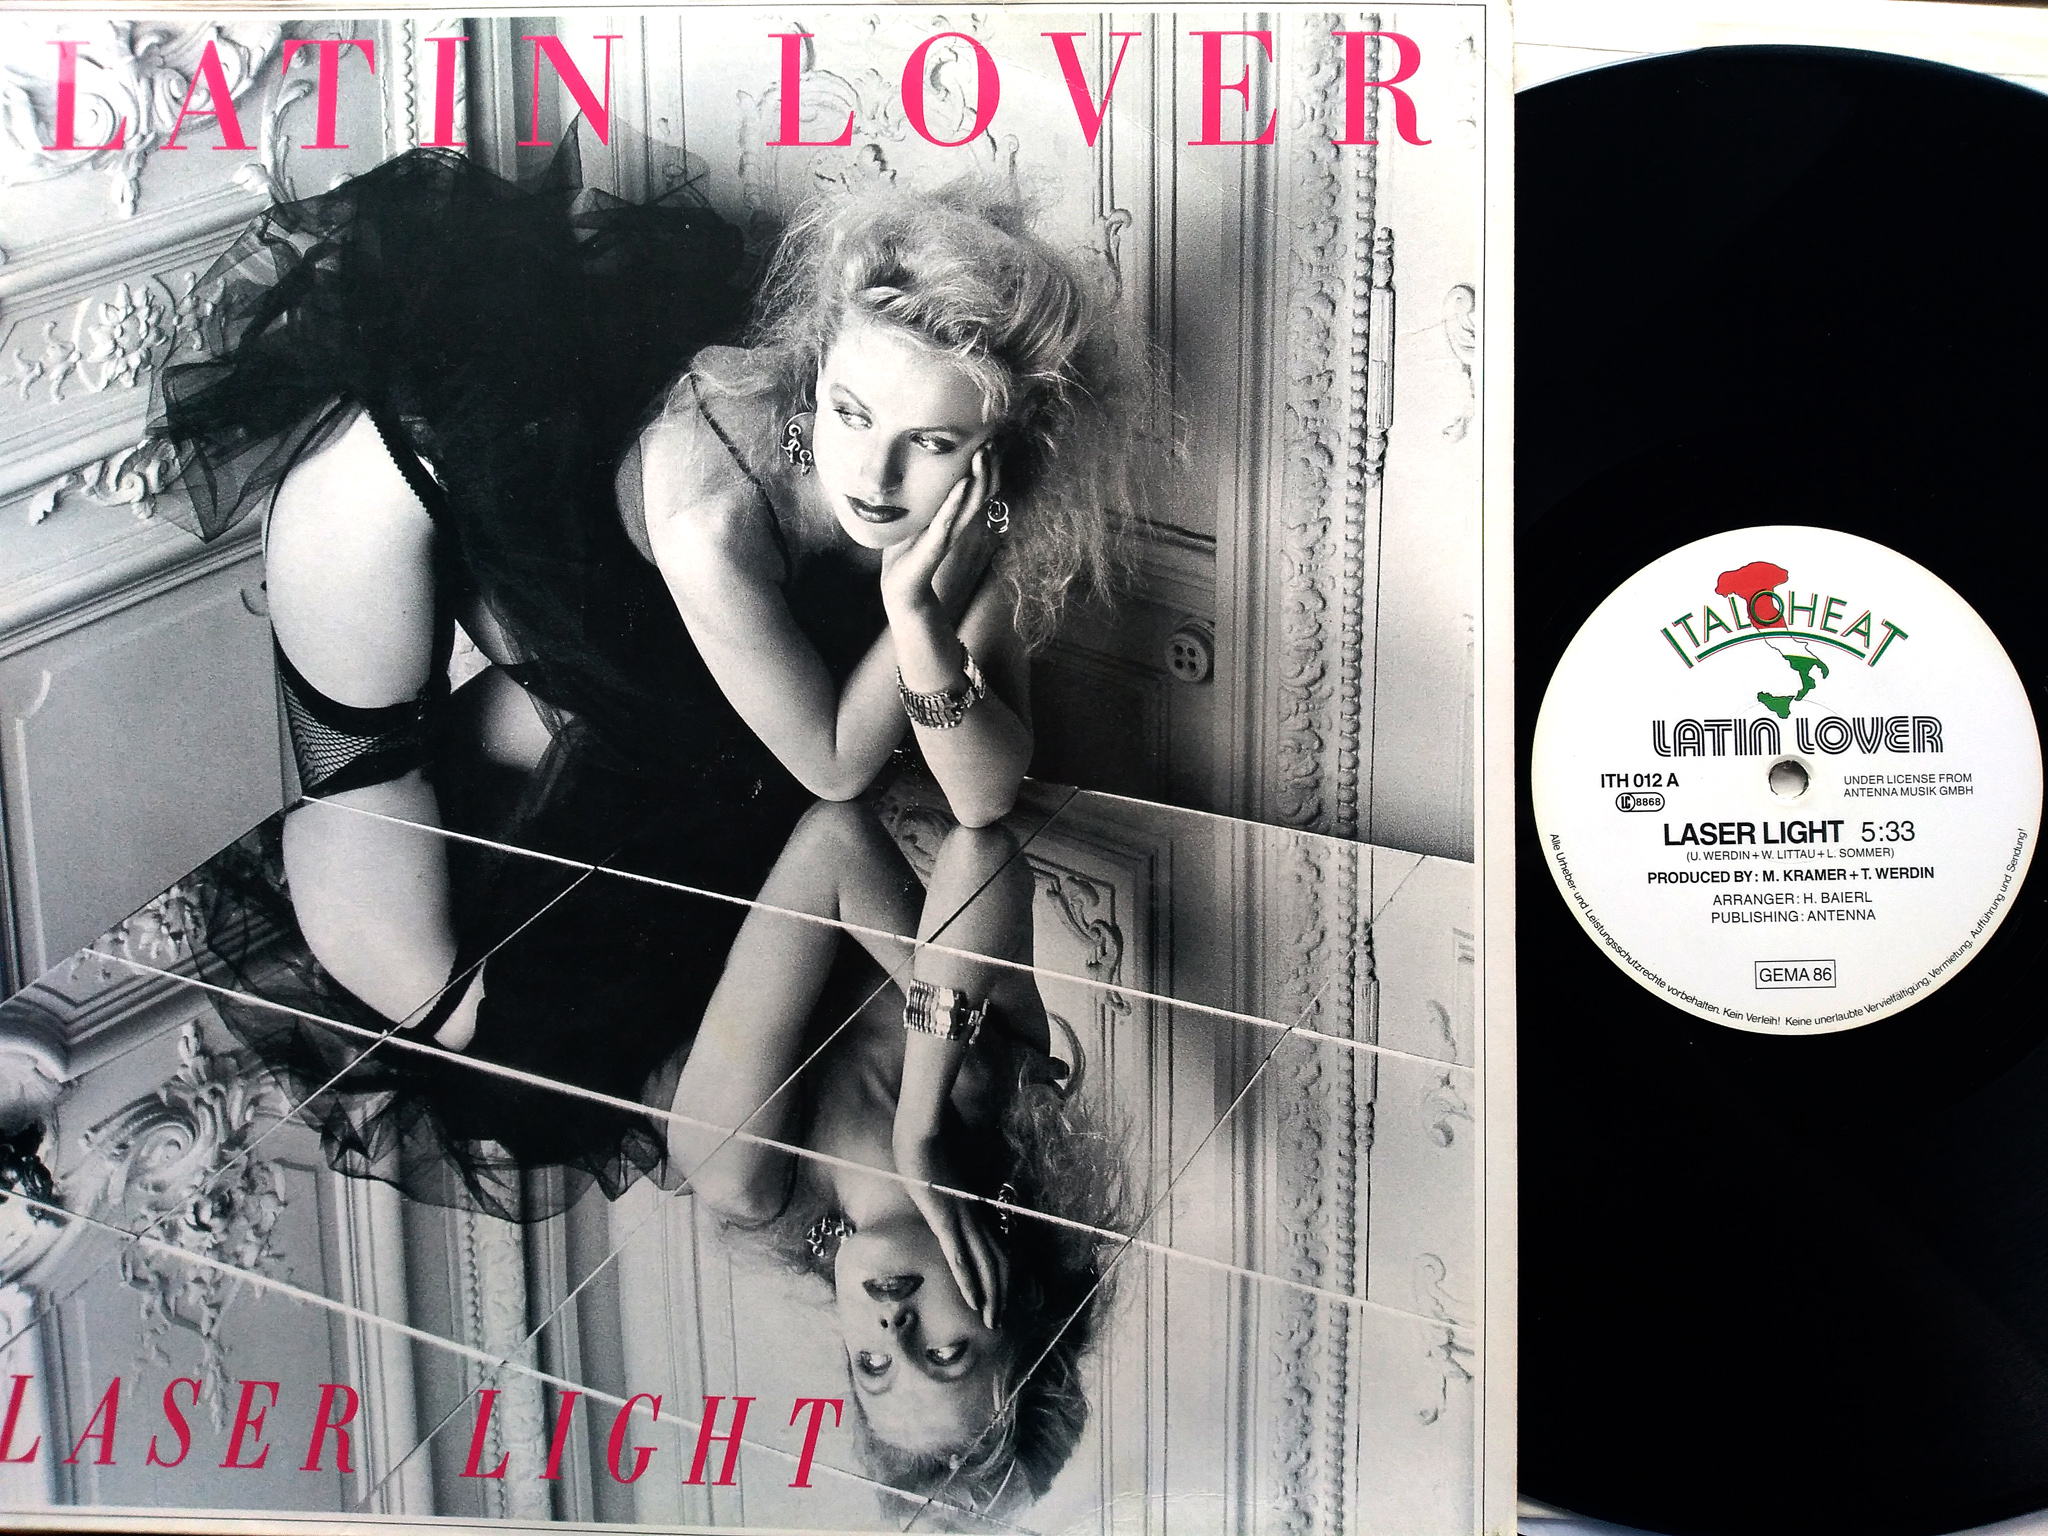 Latin Lover - Laser light